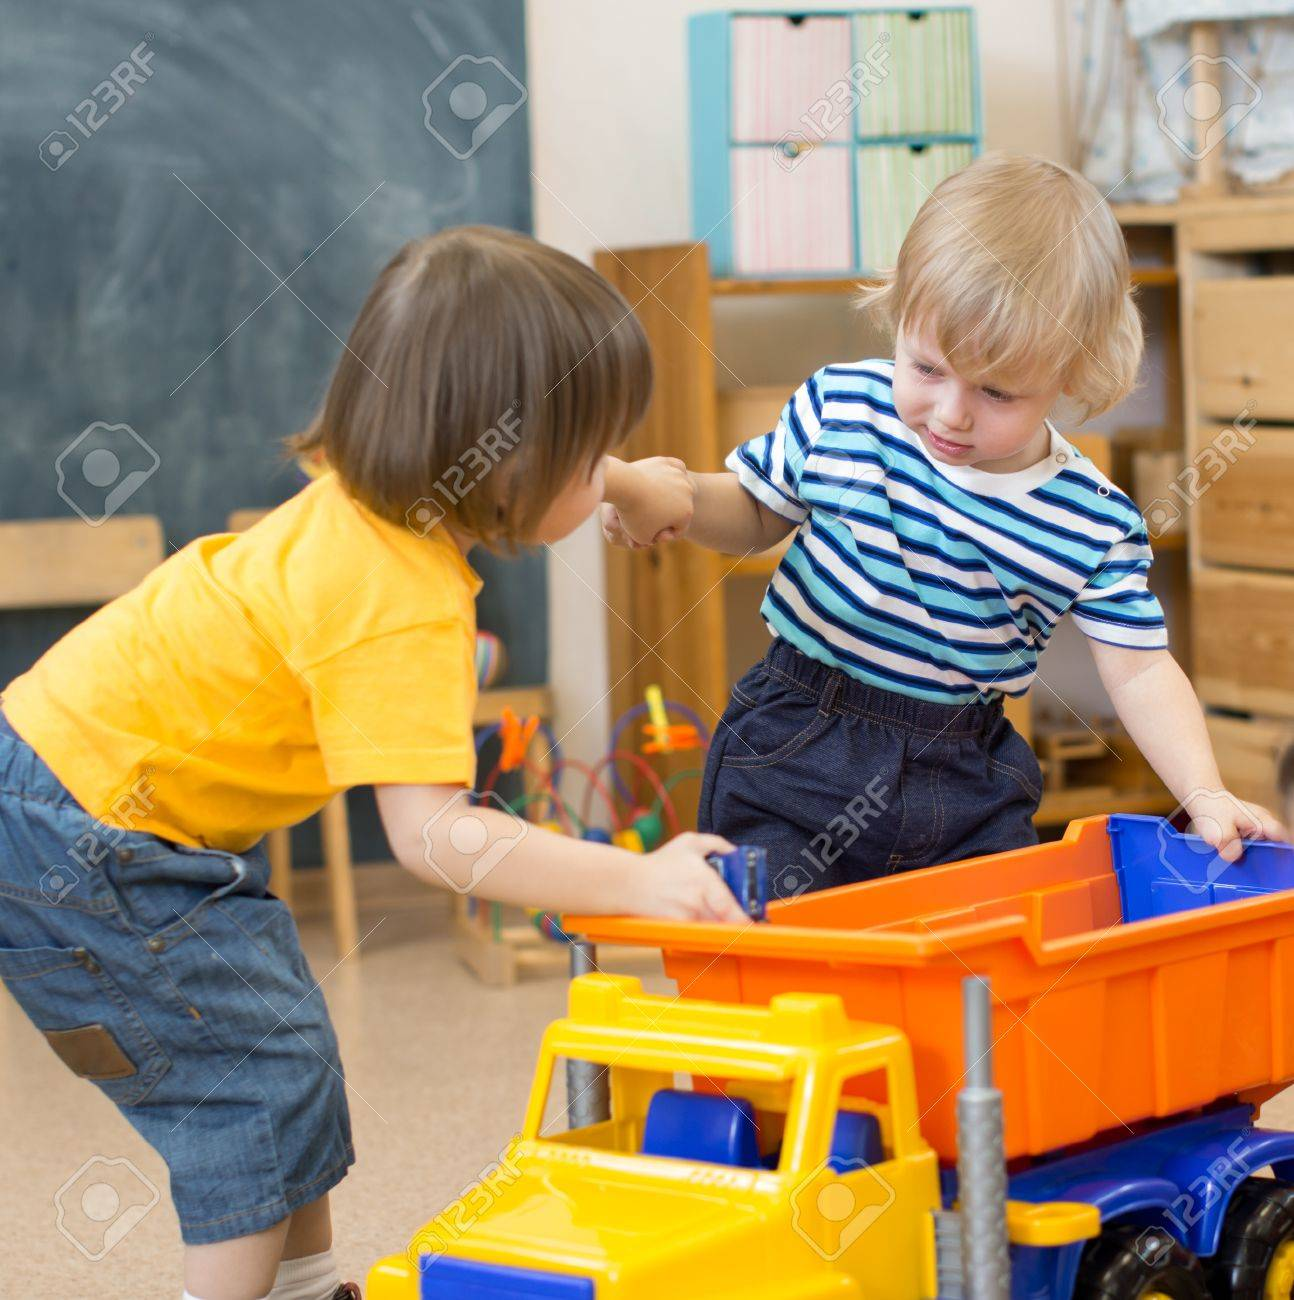 two kids pull toy truck in kindergarten play room each to his own side - 56495720